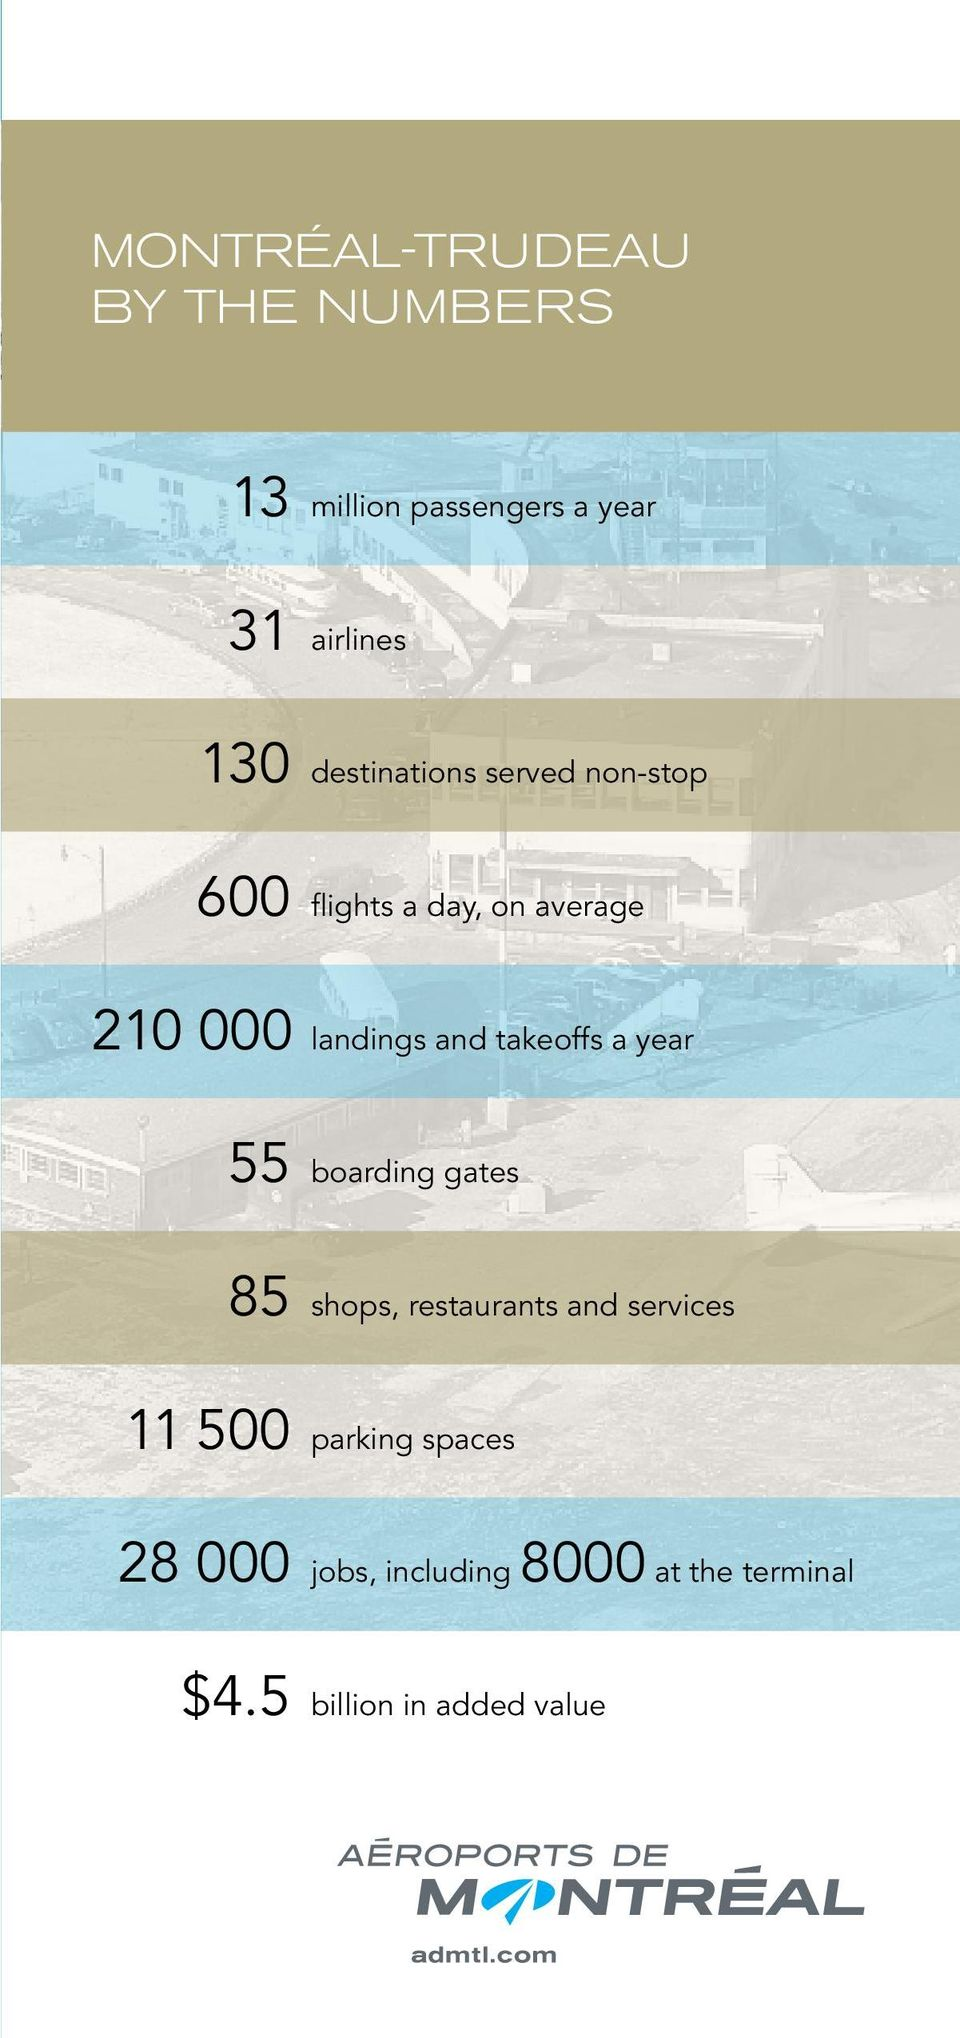 takeoffs a year 55 boarding gates 85 shops, restaurants and services 11 500